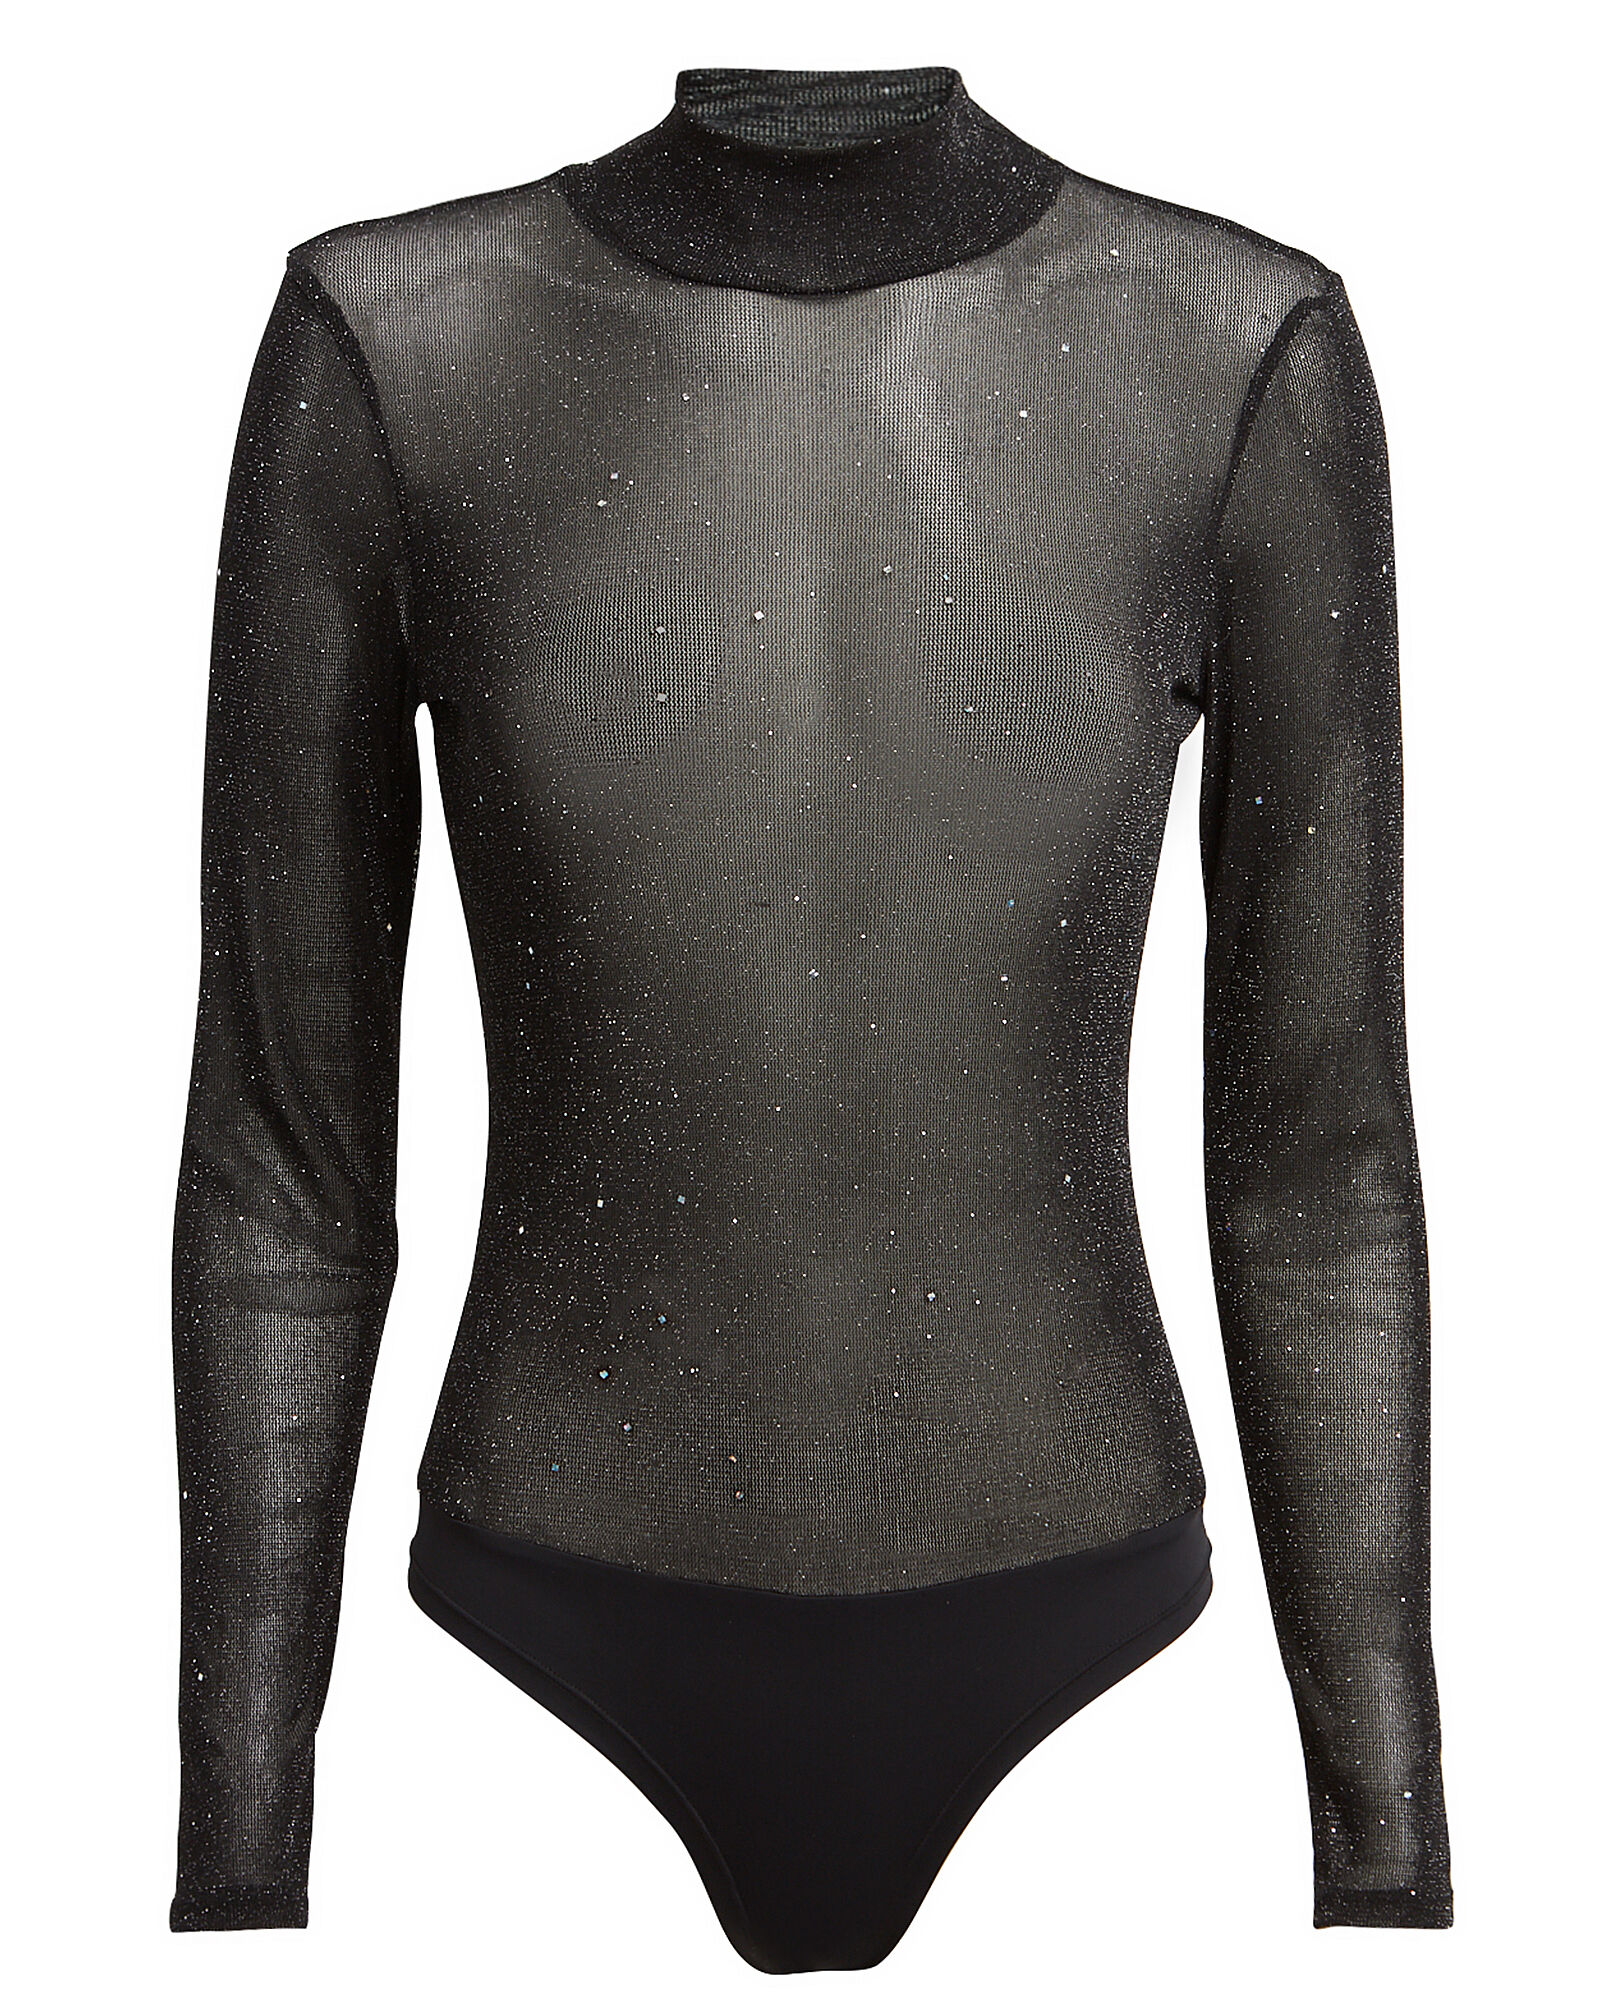 Coraline Glitter High Neck Bodysuit, BLACK, hi-res